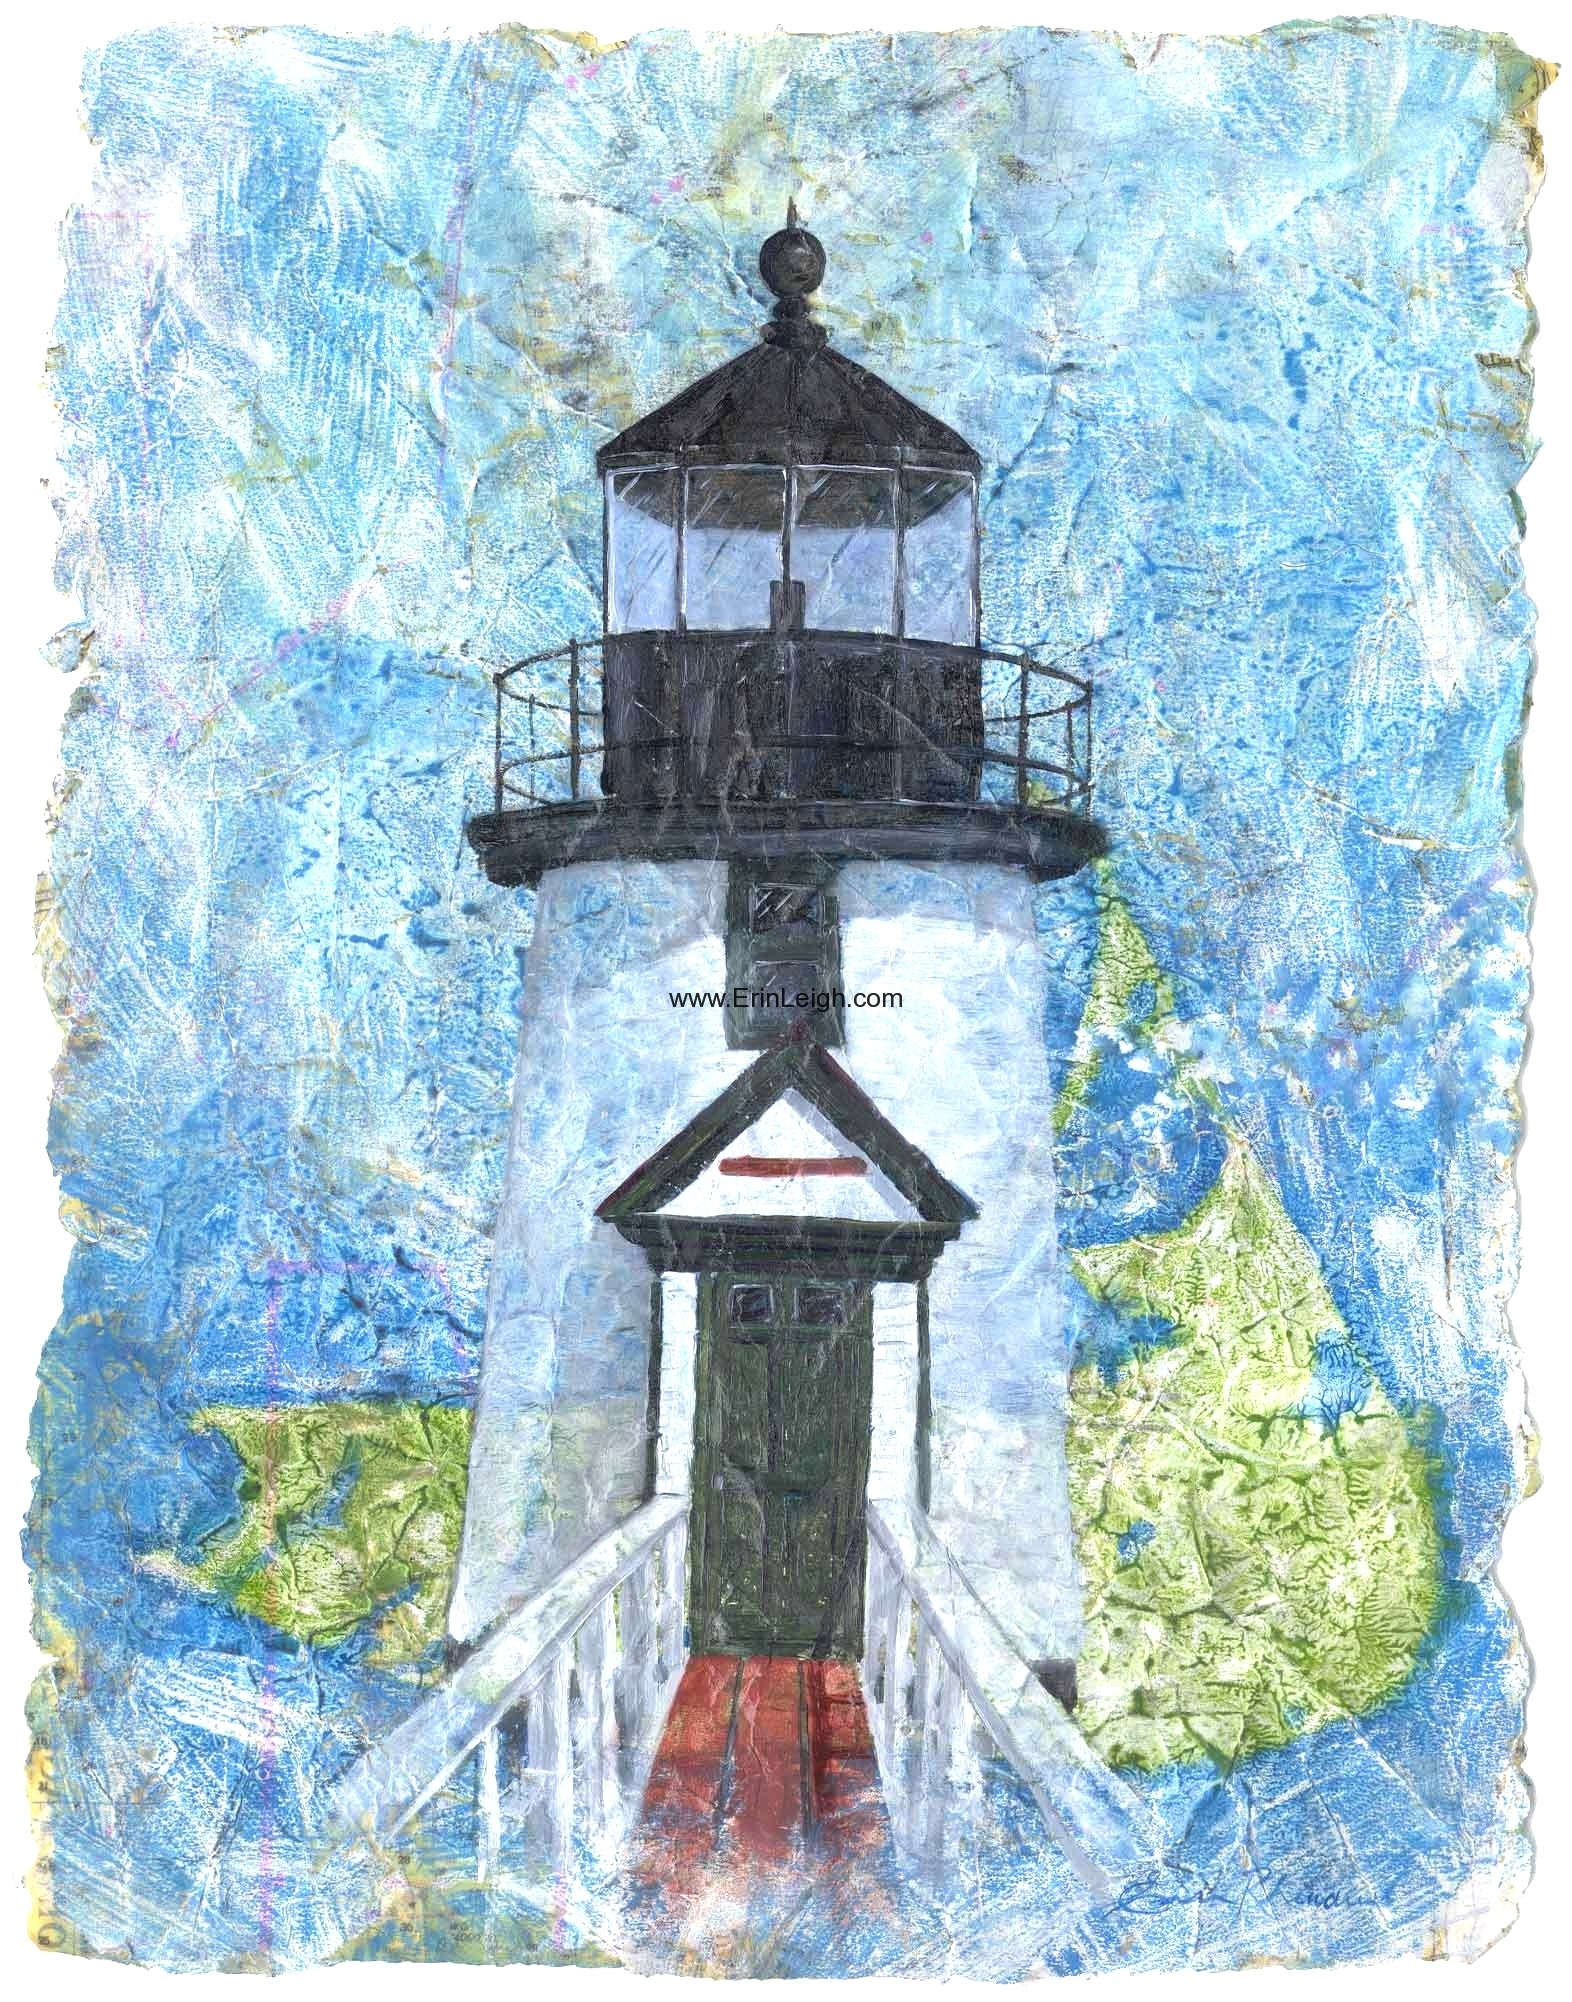 Nantucket Brant Point Lighthouse by Erin Leigh